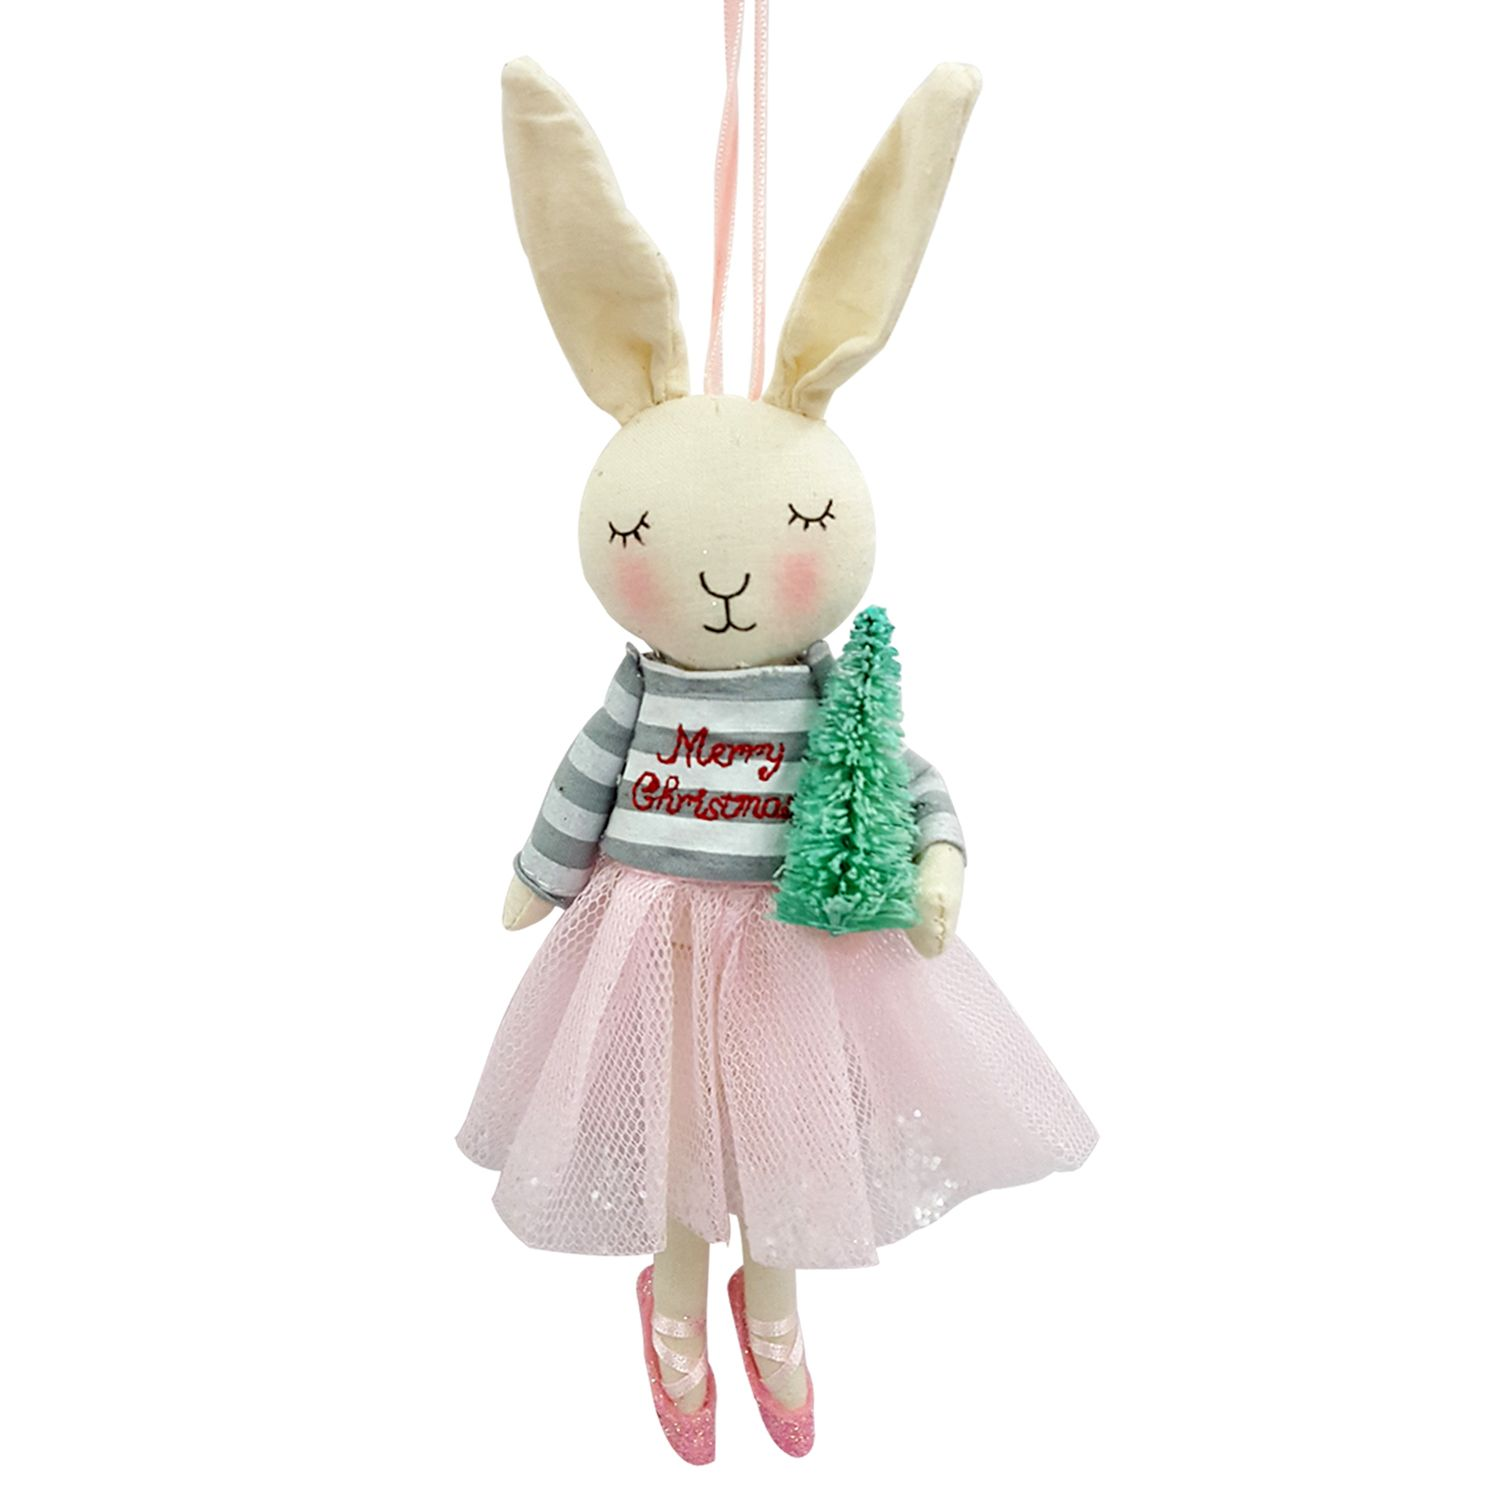 Bunny Ornaments Christmas